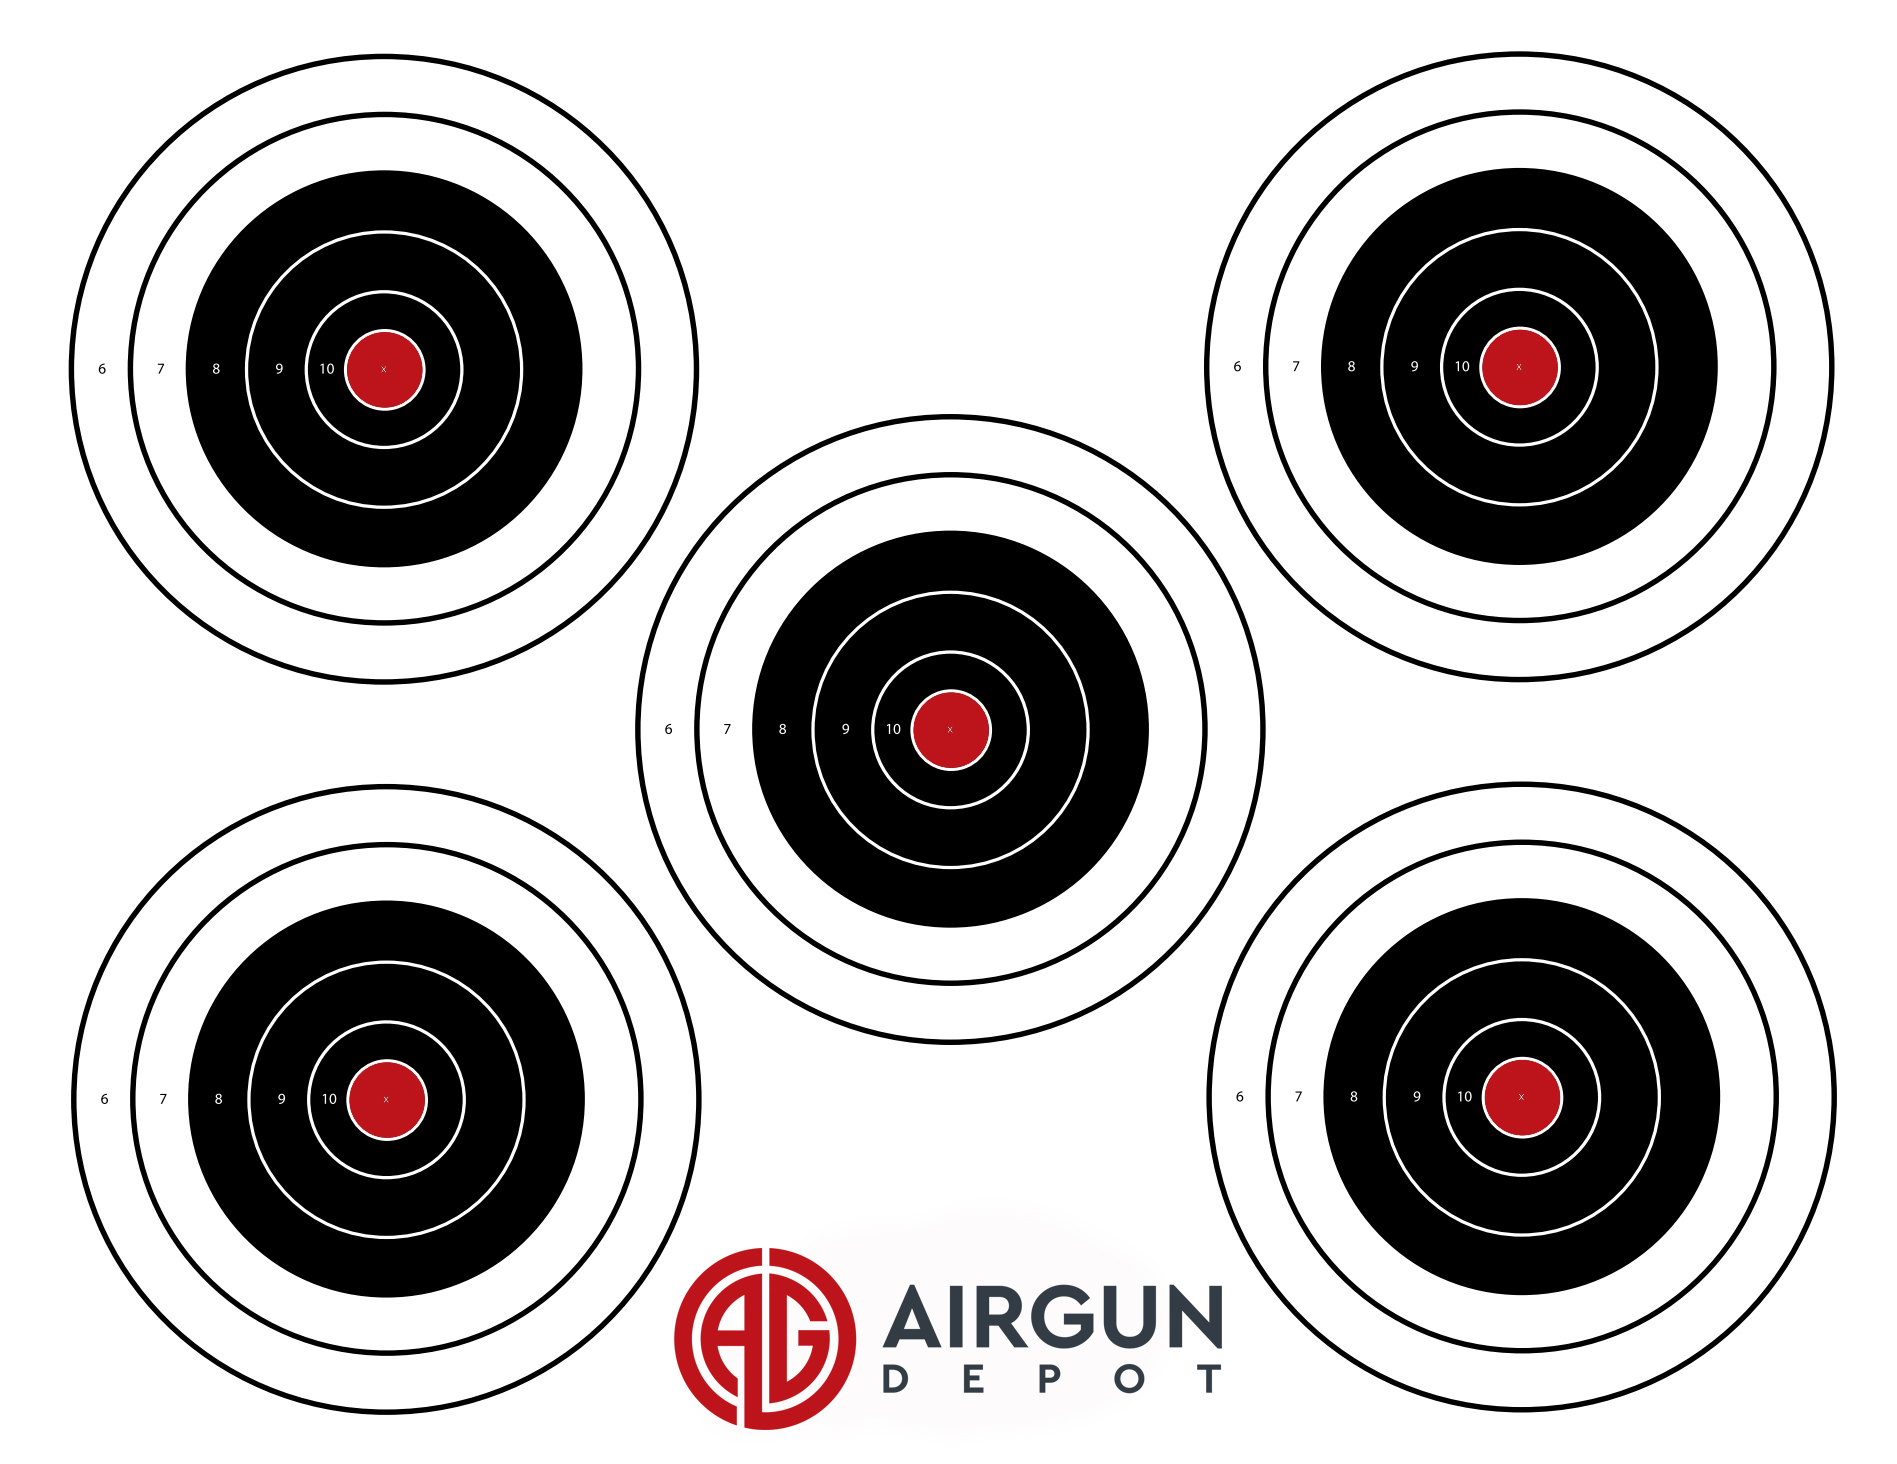 Airgun Depot Large Air Pistol or Air Rifle Targets